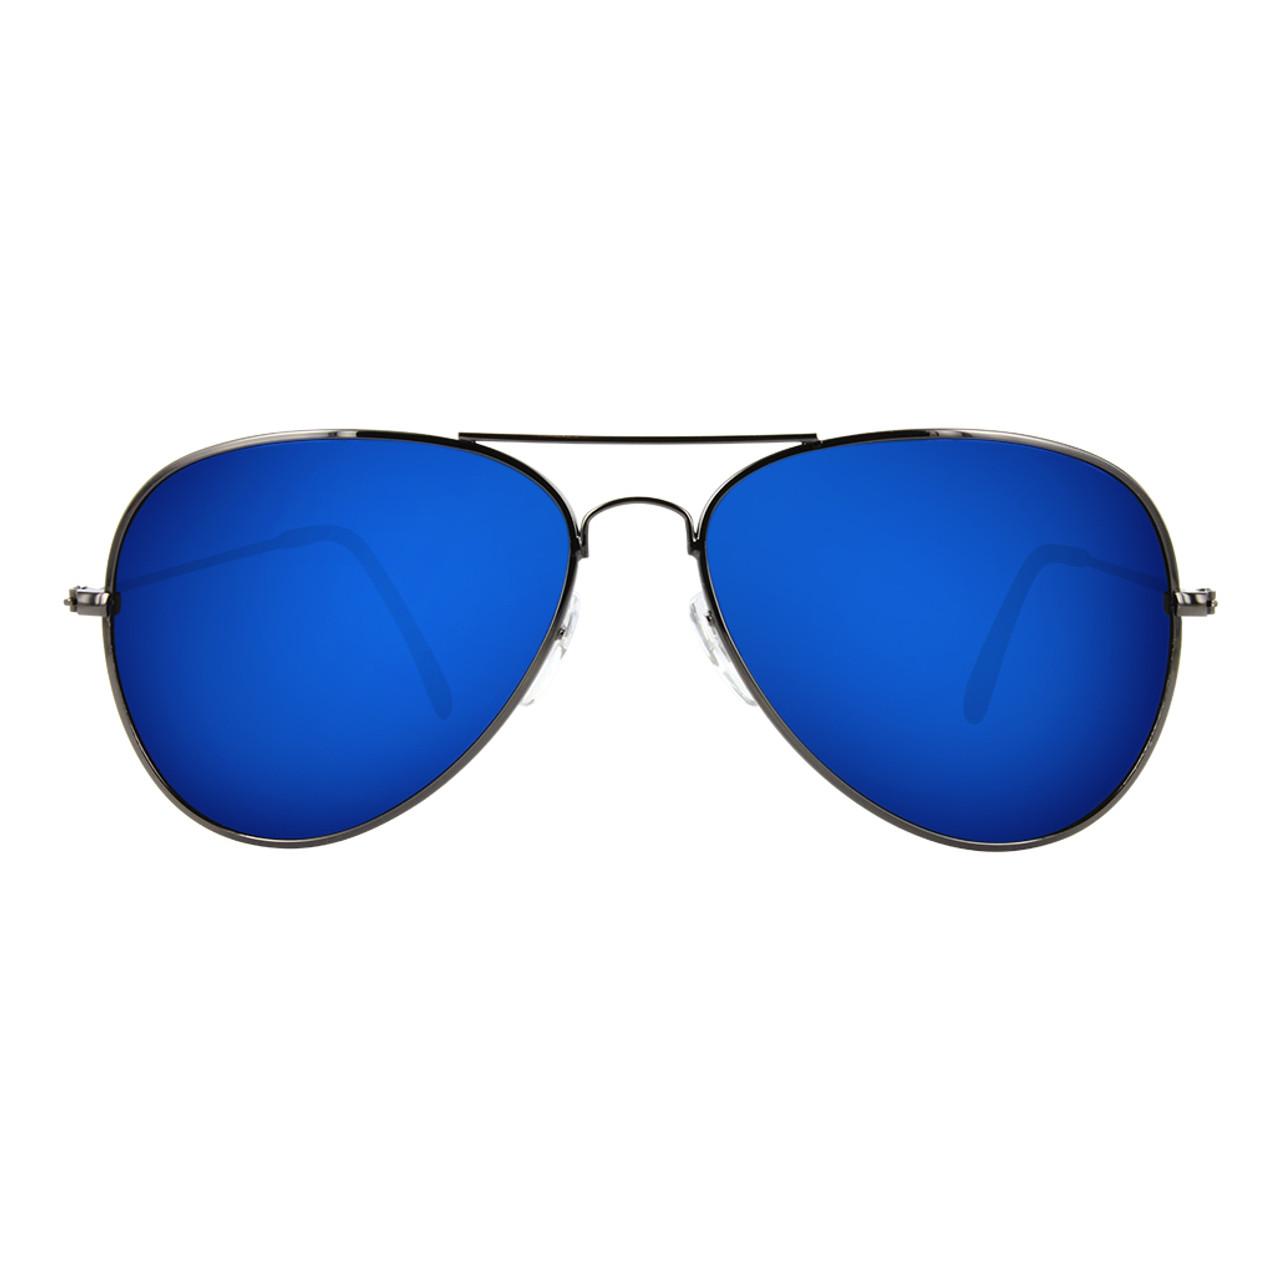 GEEK COUTURE Aviator Sunglasses Blue Mirror